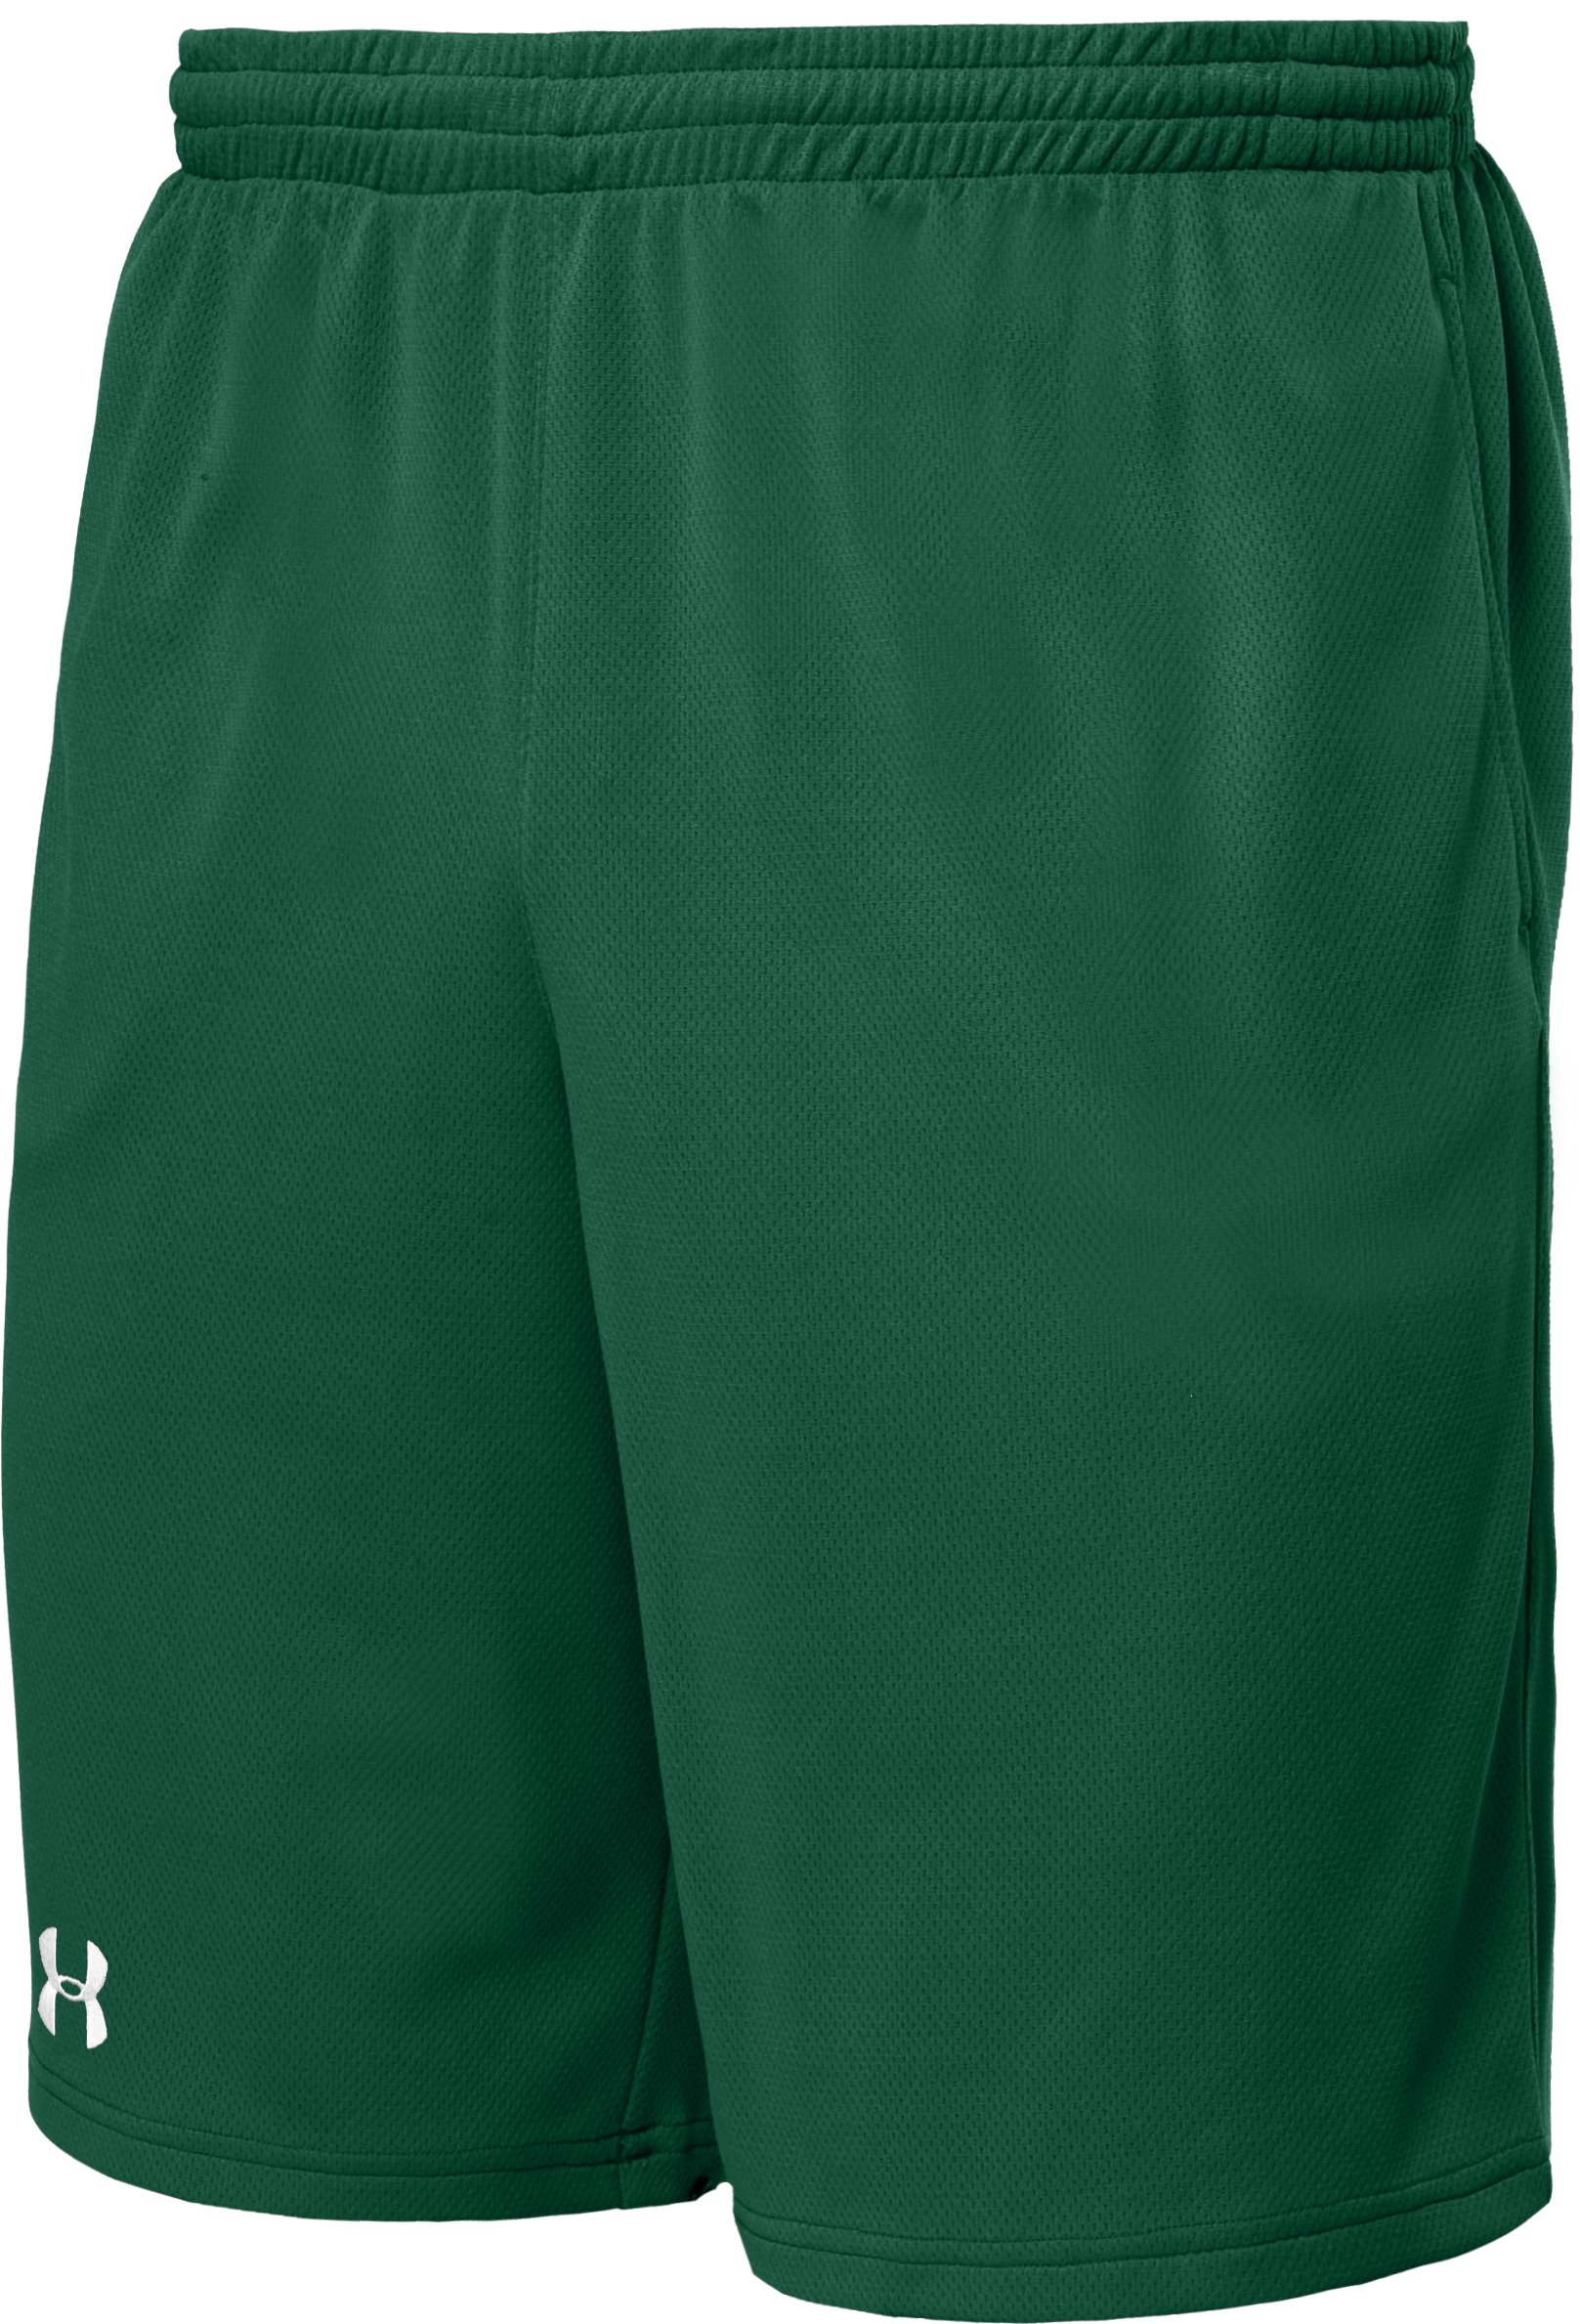 "Men's UA Flex 10"" Shorts, Forest Green"